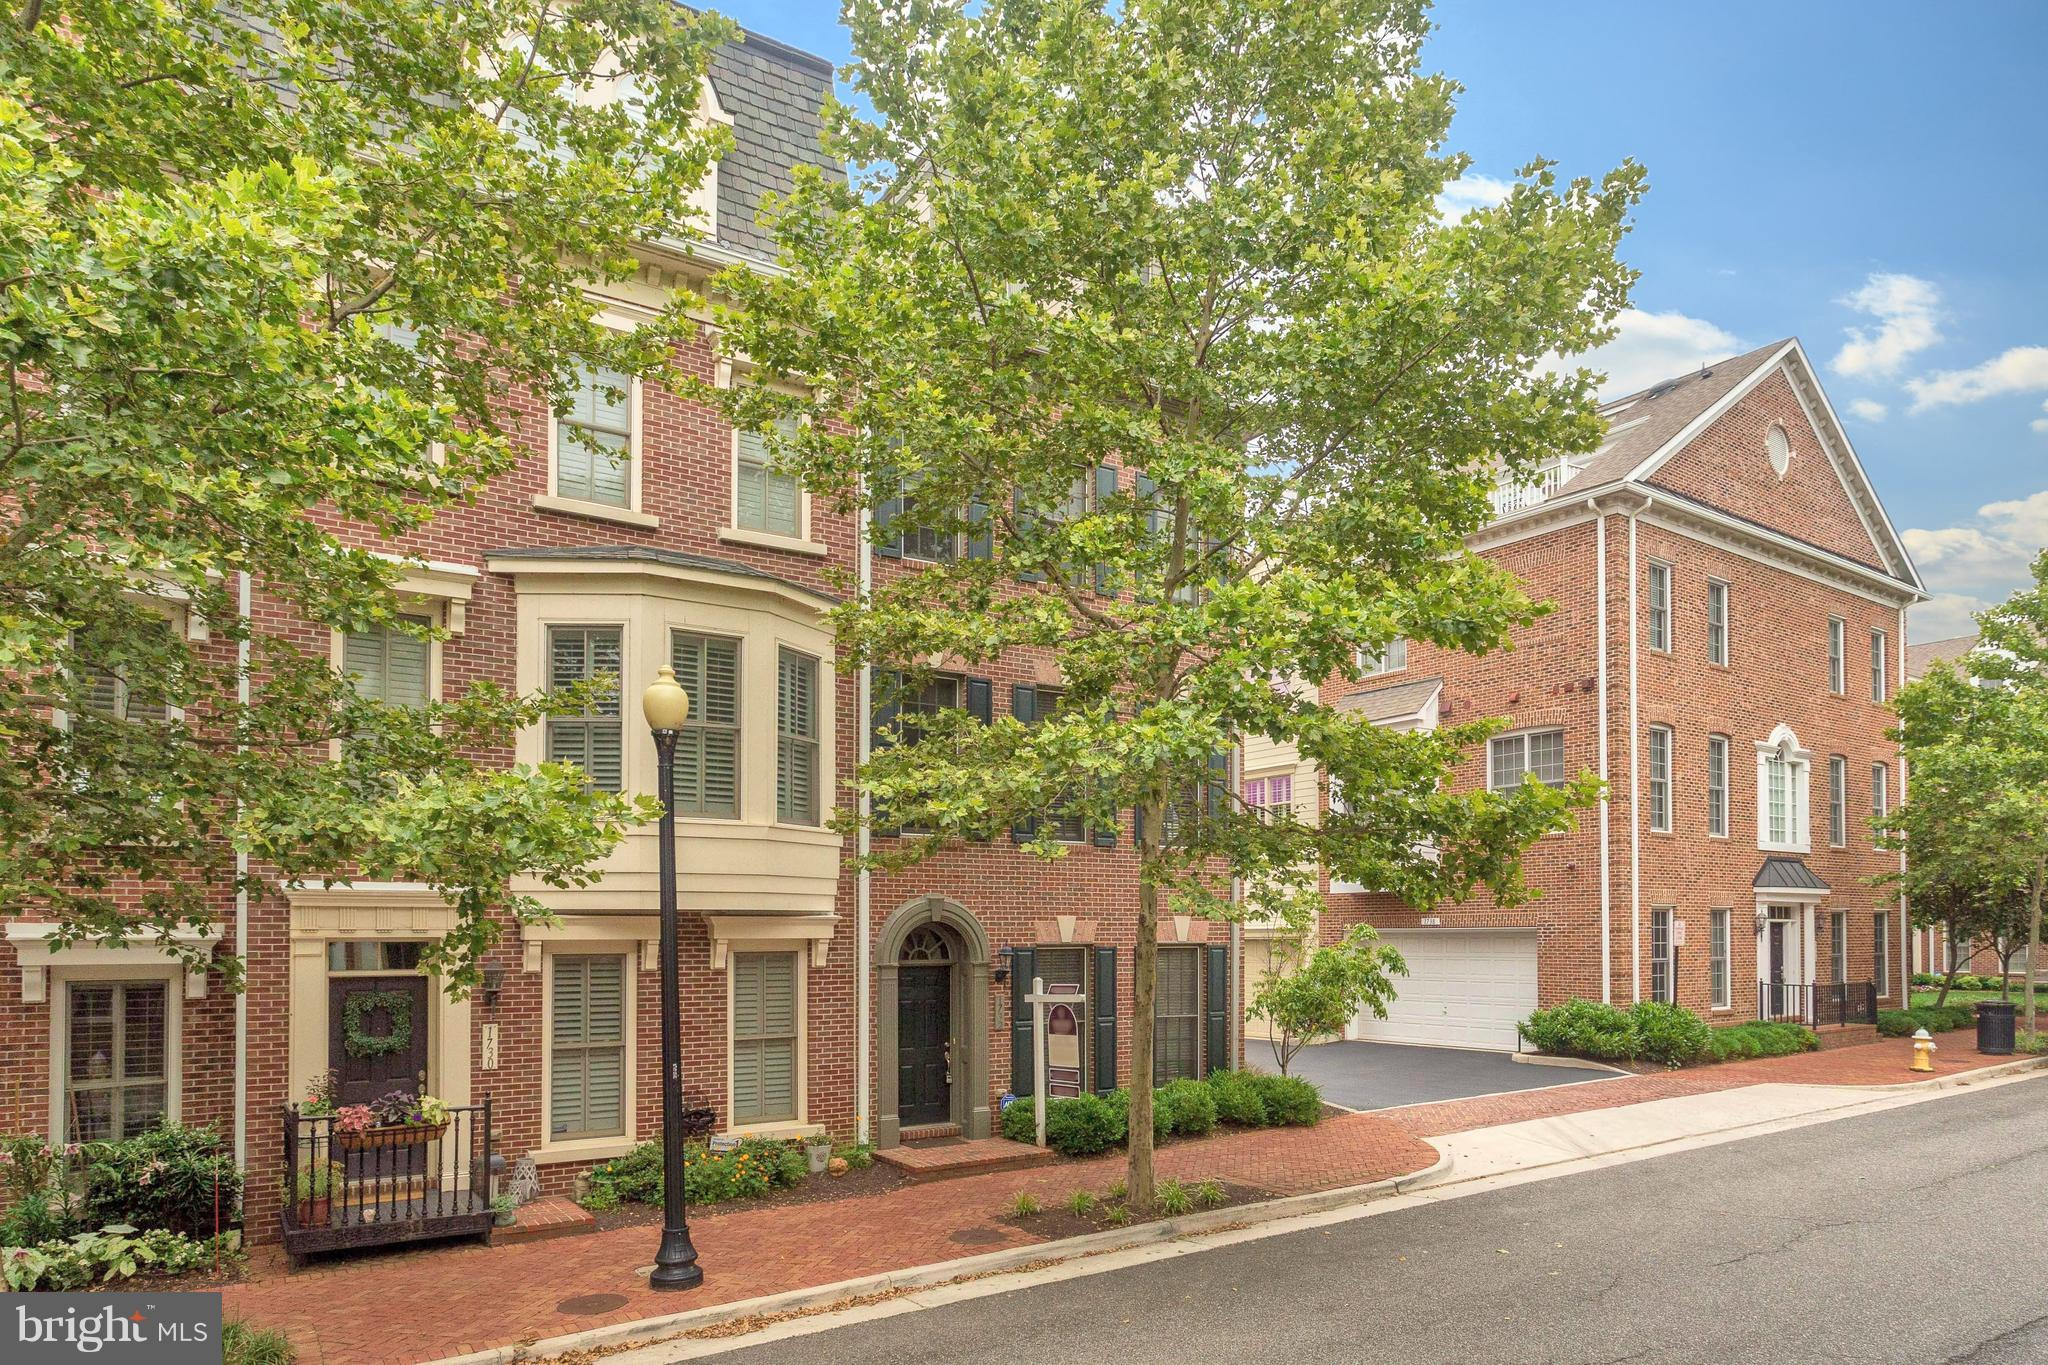 Minutes to National Landing and new Amazon HQ.  Thriving neighborhood punctuated by locally owned restaurants and shops, yet just minutes away from Potomac Yard Center, Braddock Rd metro, shopping & dining. End unit with space & light. Open floorplan w/hardwoods on main & bedroom levels. Chef~s kitchen, lux, owner~s suite w/elfa closet, dual vanity, soaking tub. Rooftop terrace! Community offers pool, exercise room, tot lot & shuttle to metro.